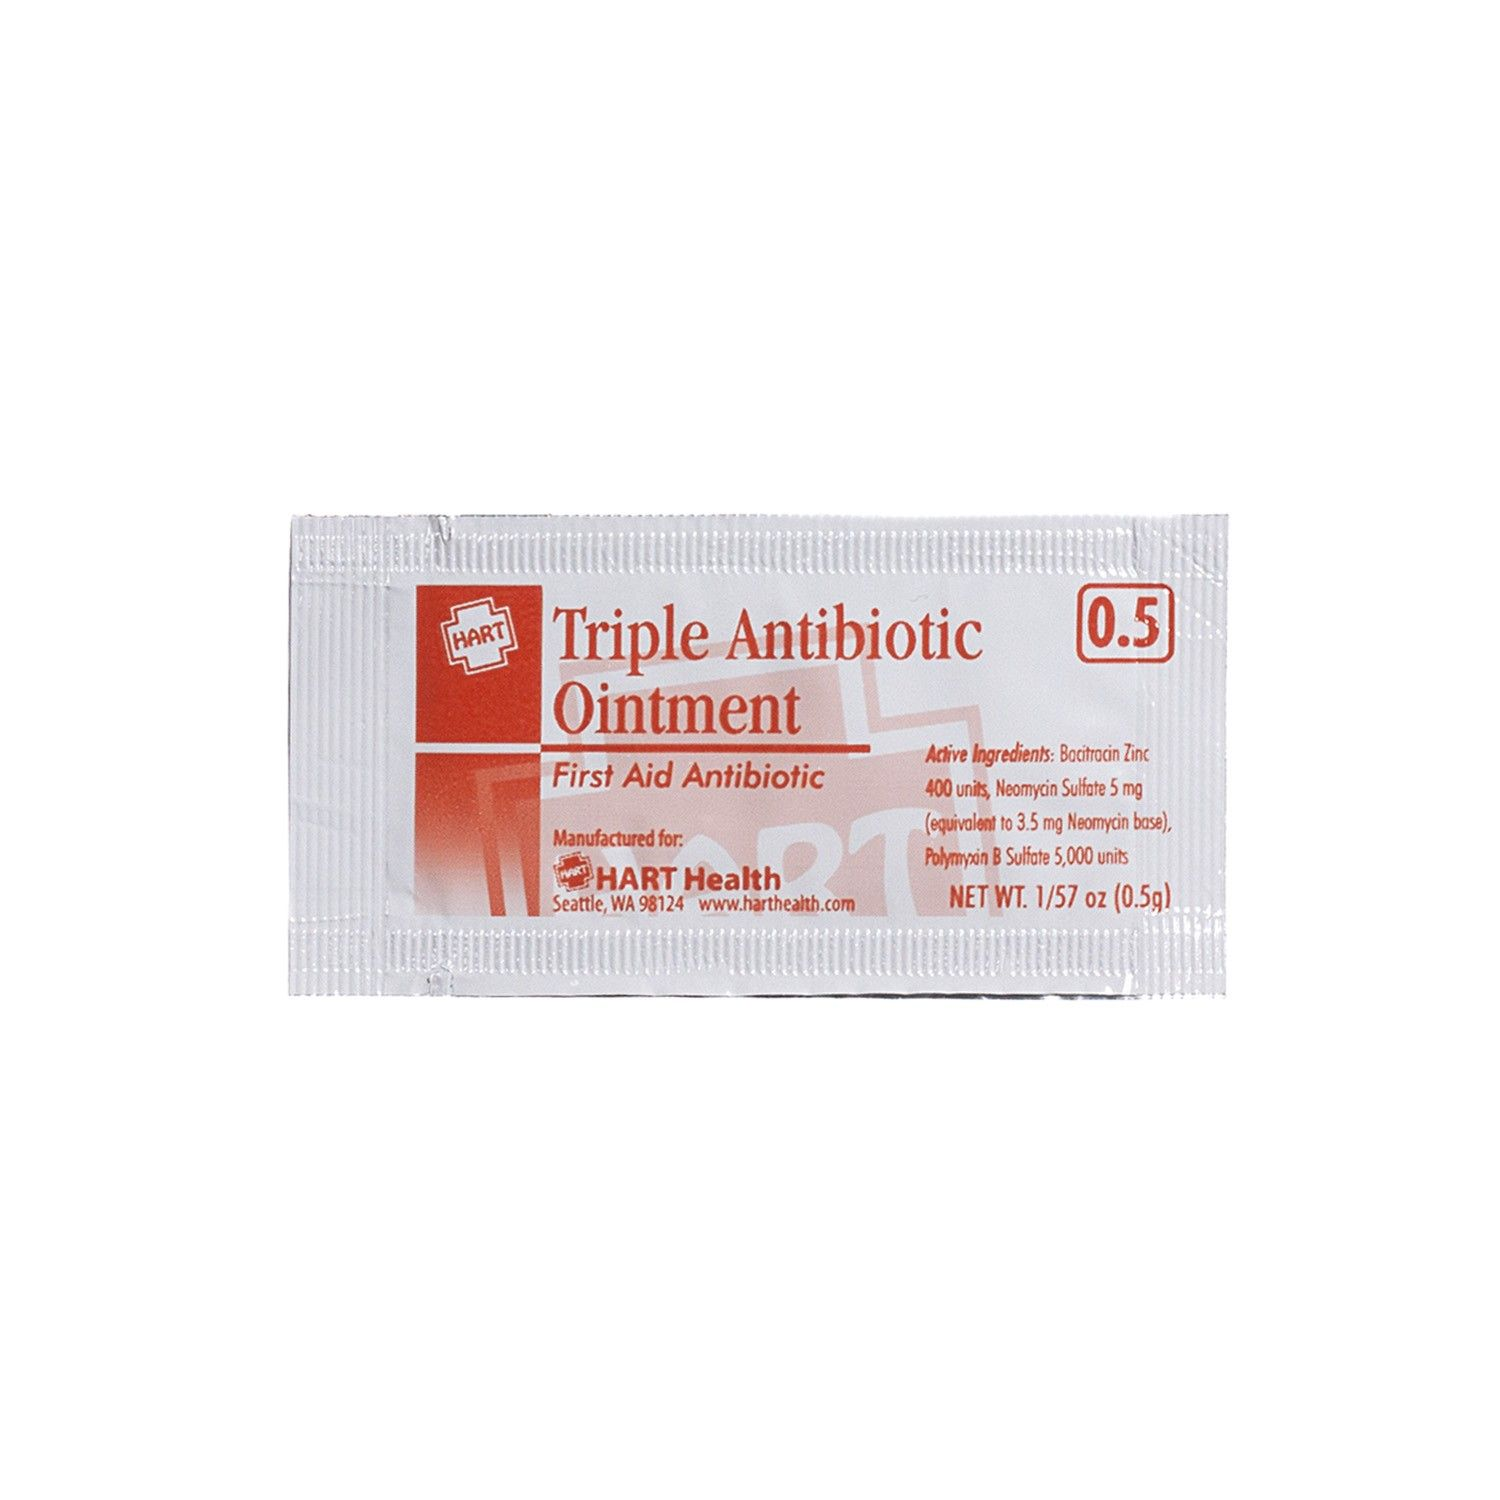 Triple Antibiotic Ointment Single Dose Packet Contains